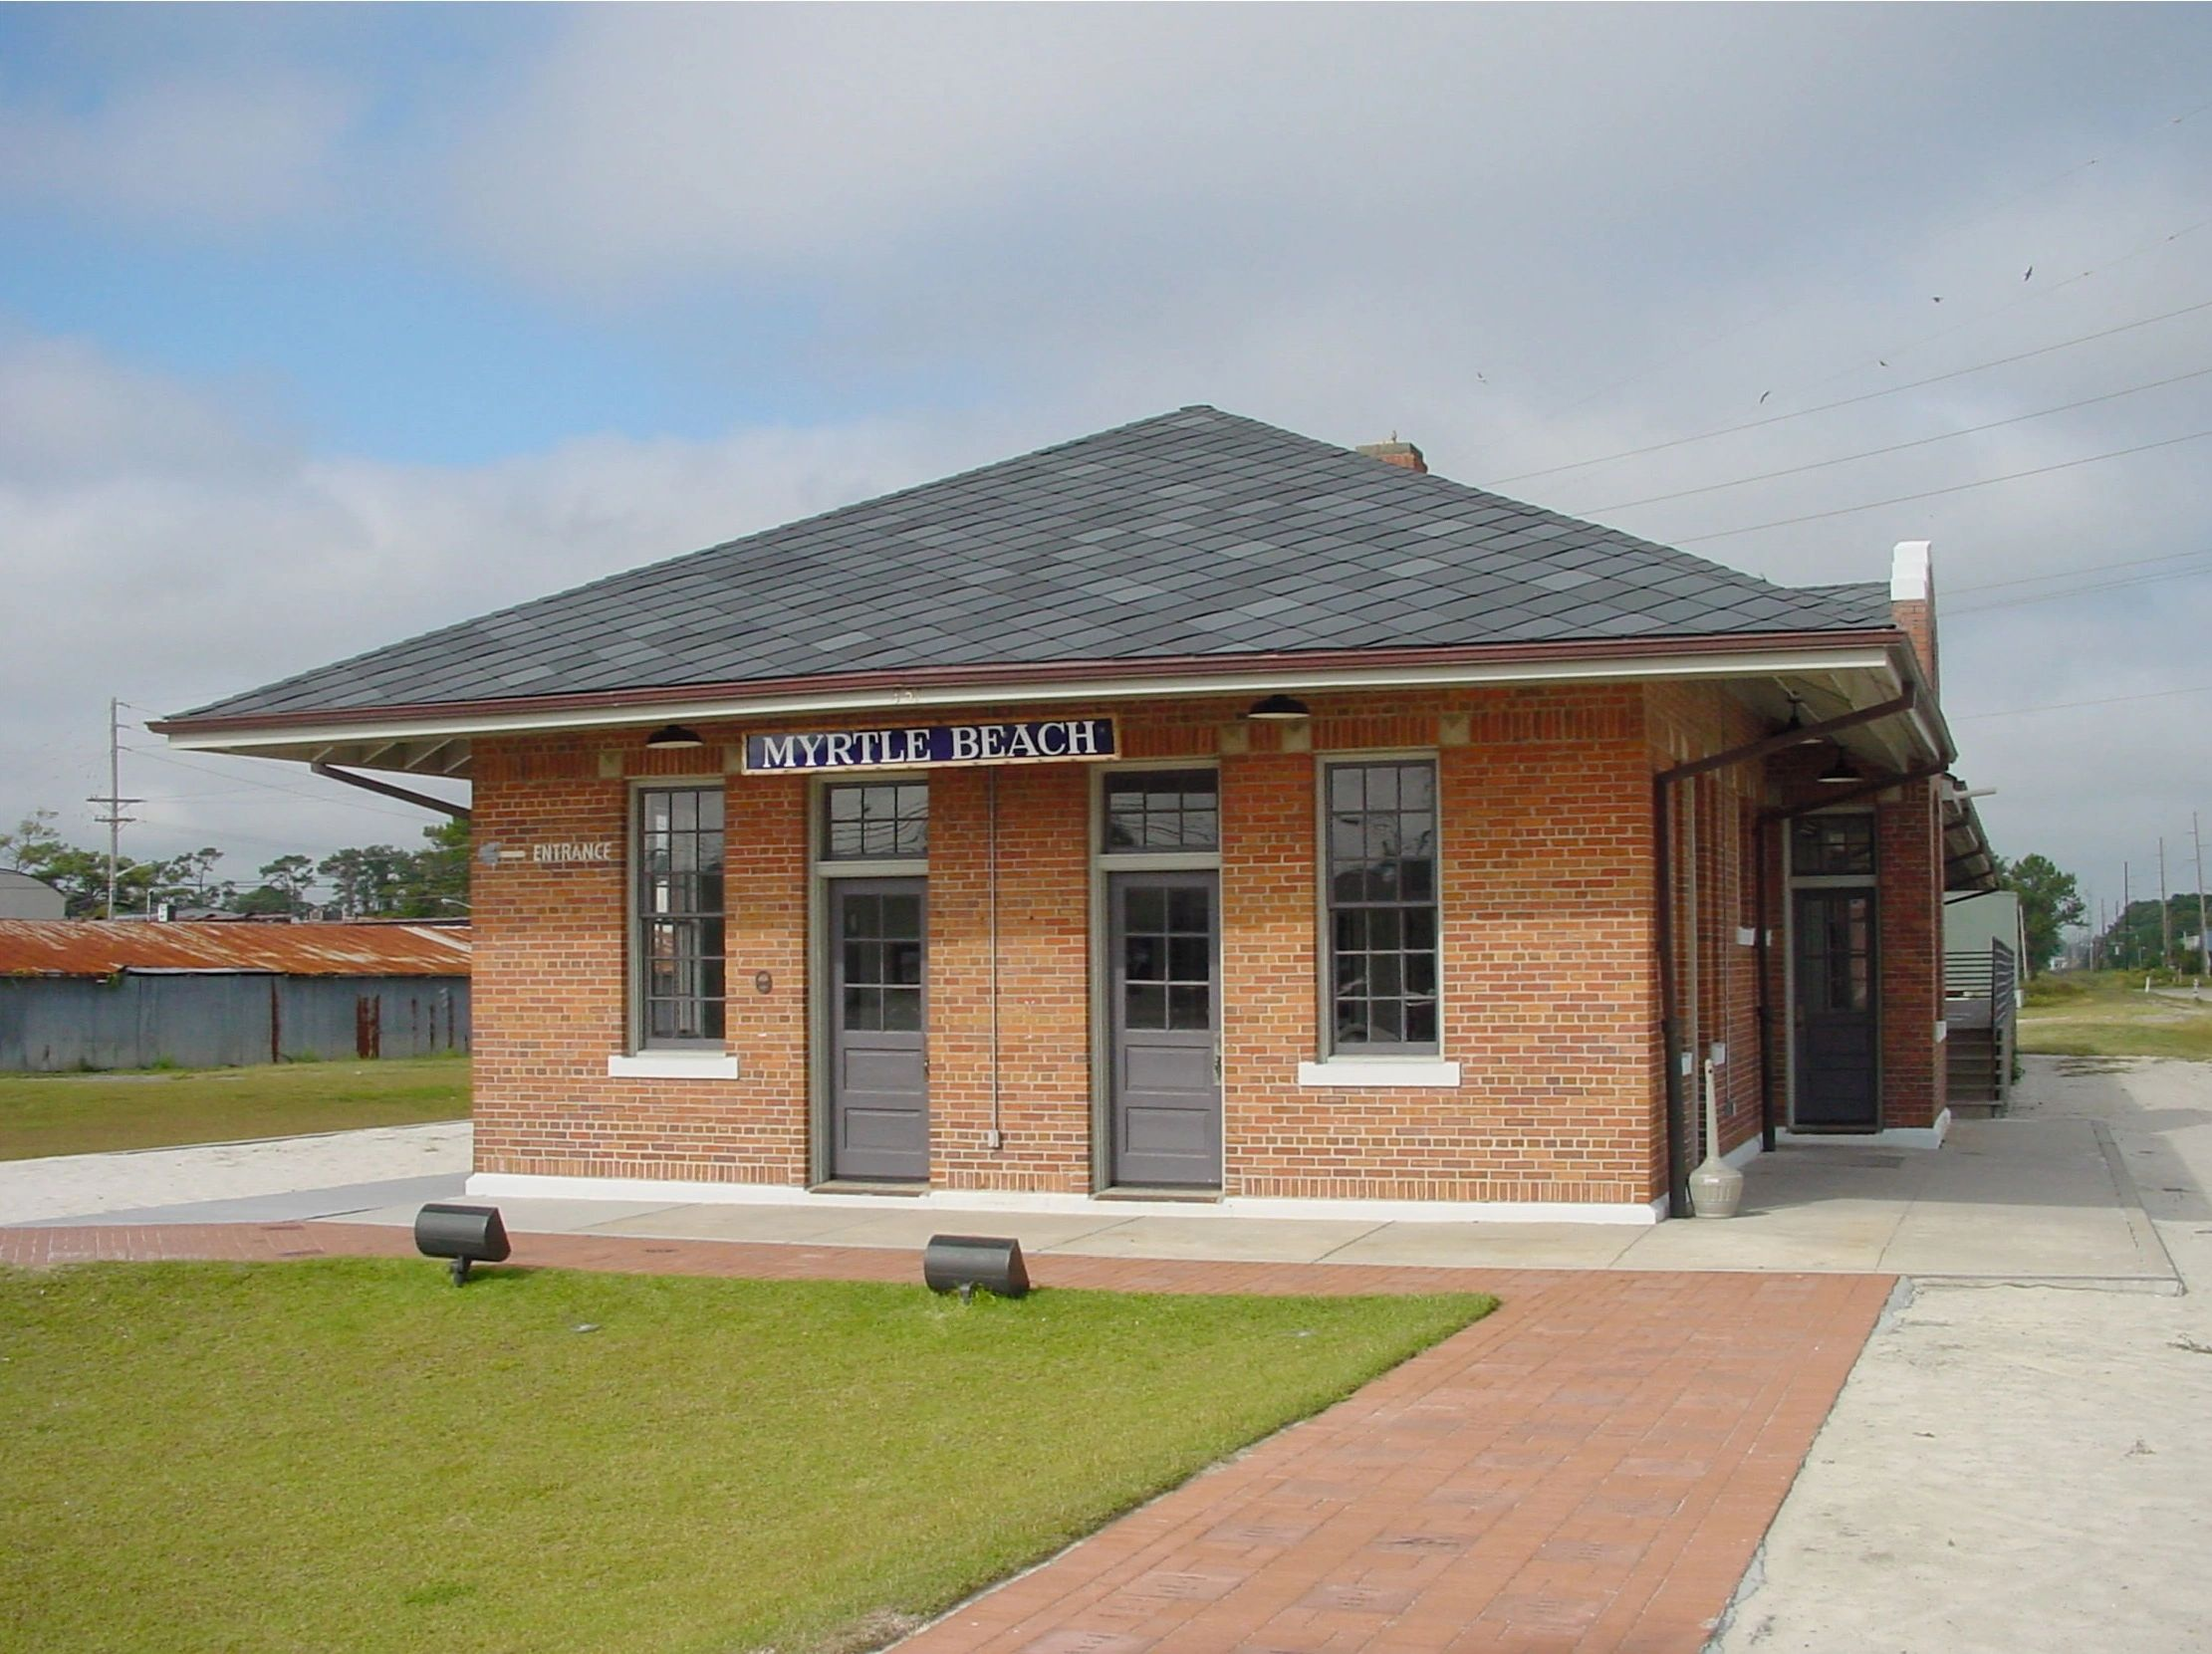 Historic Myrtle beach Train Depot Restoration